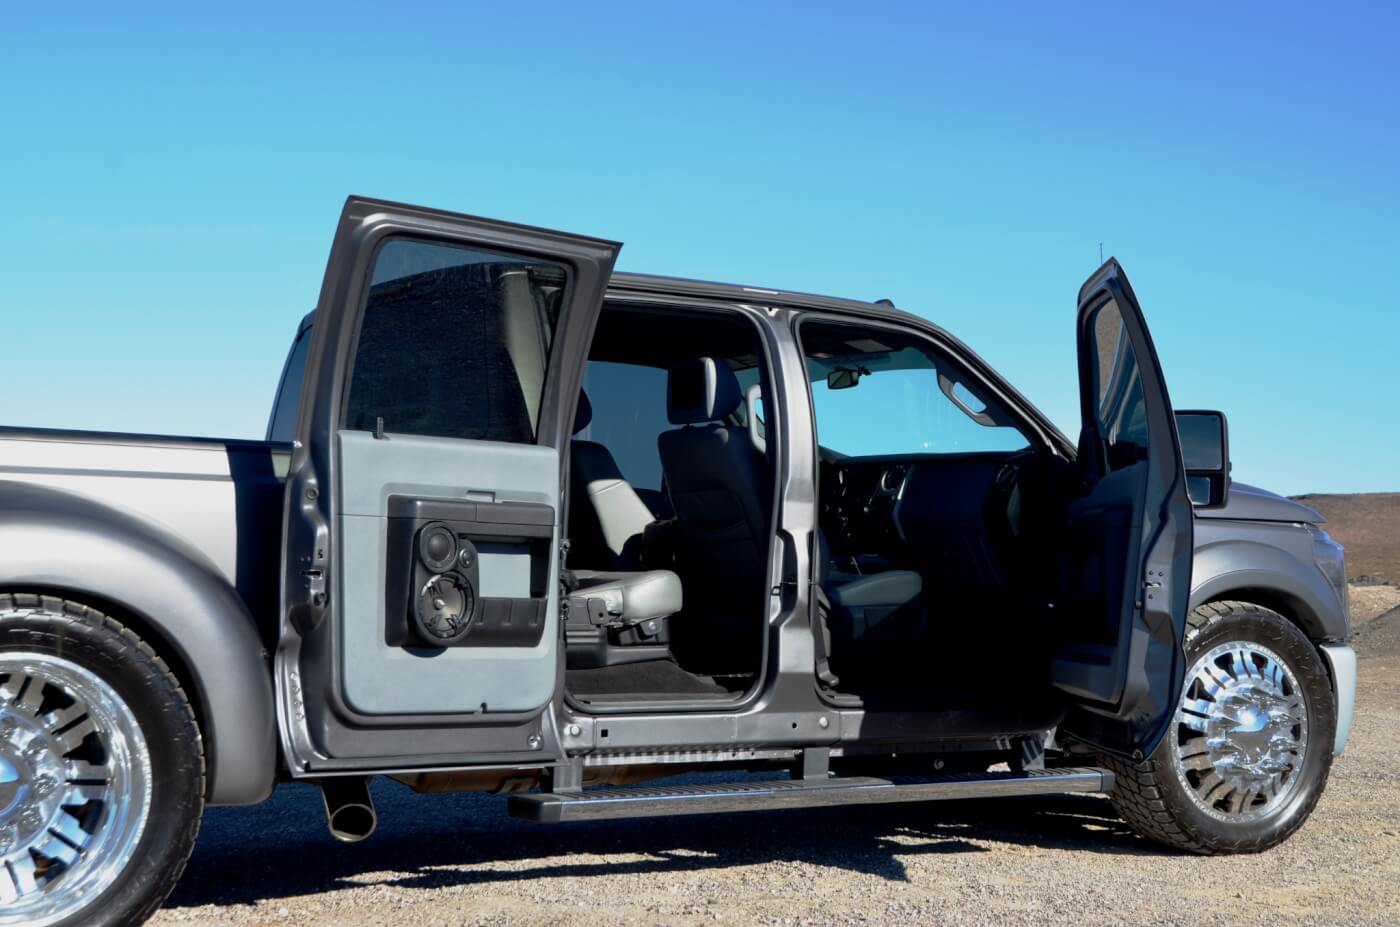 Extensive work was done to reinforce the rear doors which eliminated any sagging when open, which is common with aftermarket suicide door modifications.